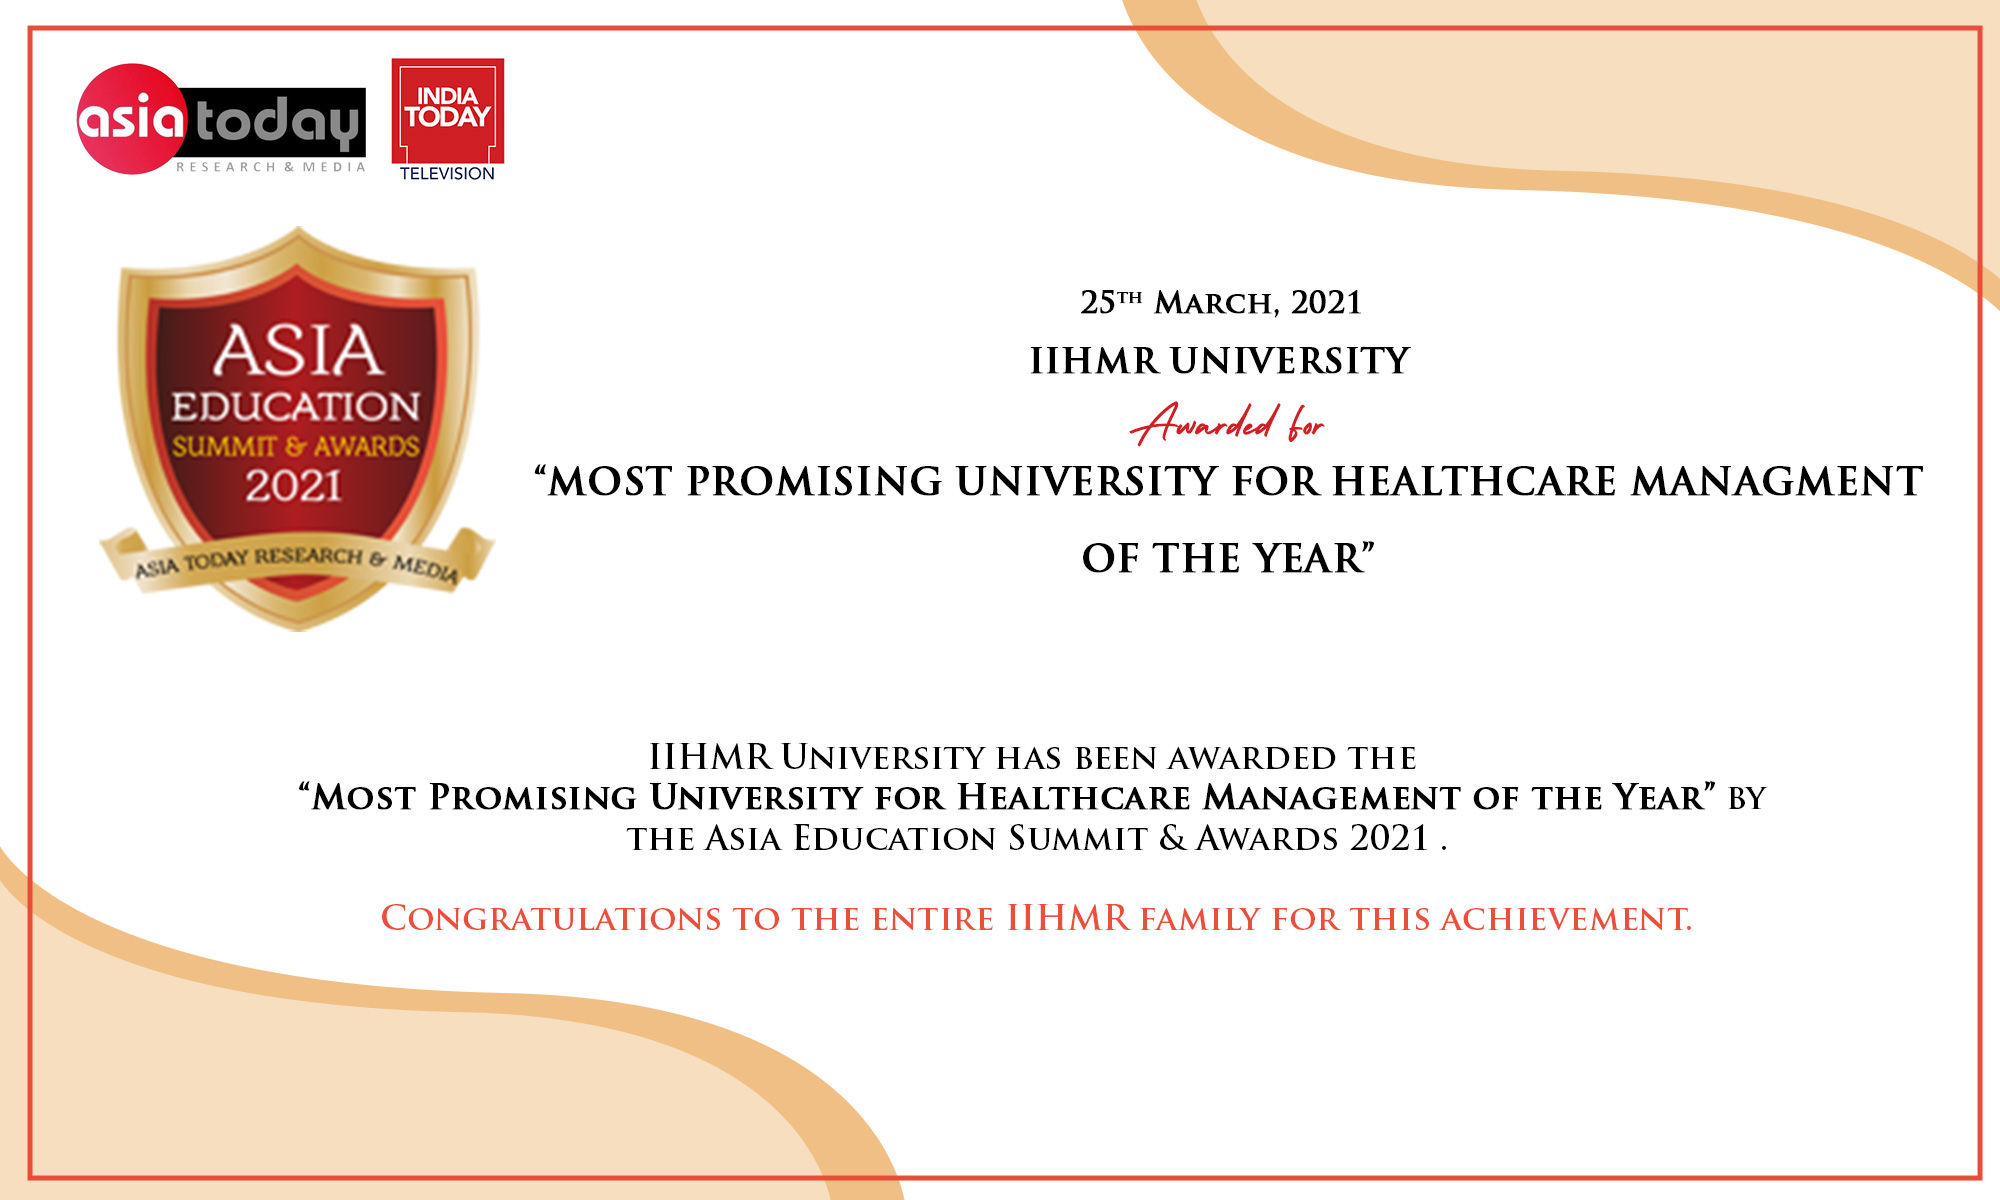 Most Promosing Univeristy for Healthcare Mangement of the Year - asia education award